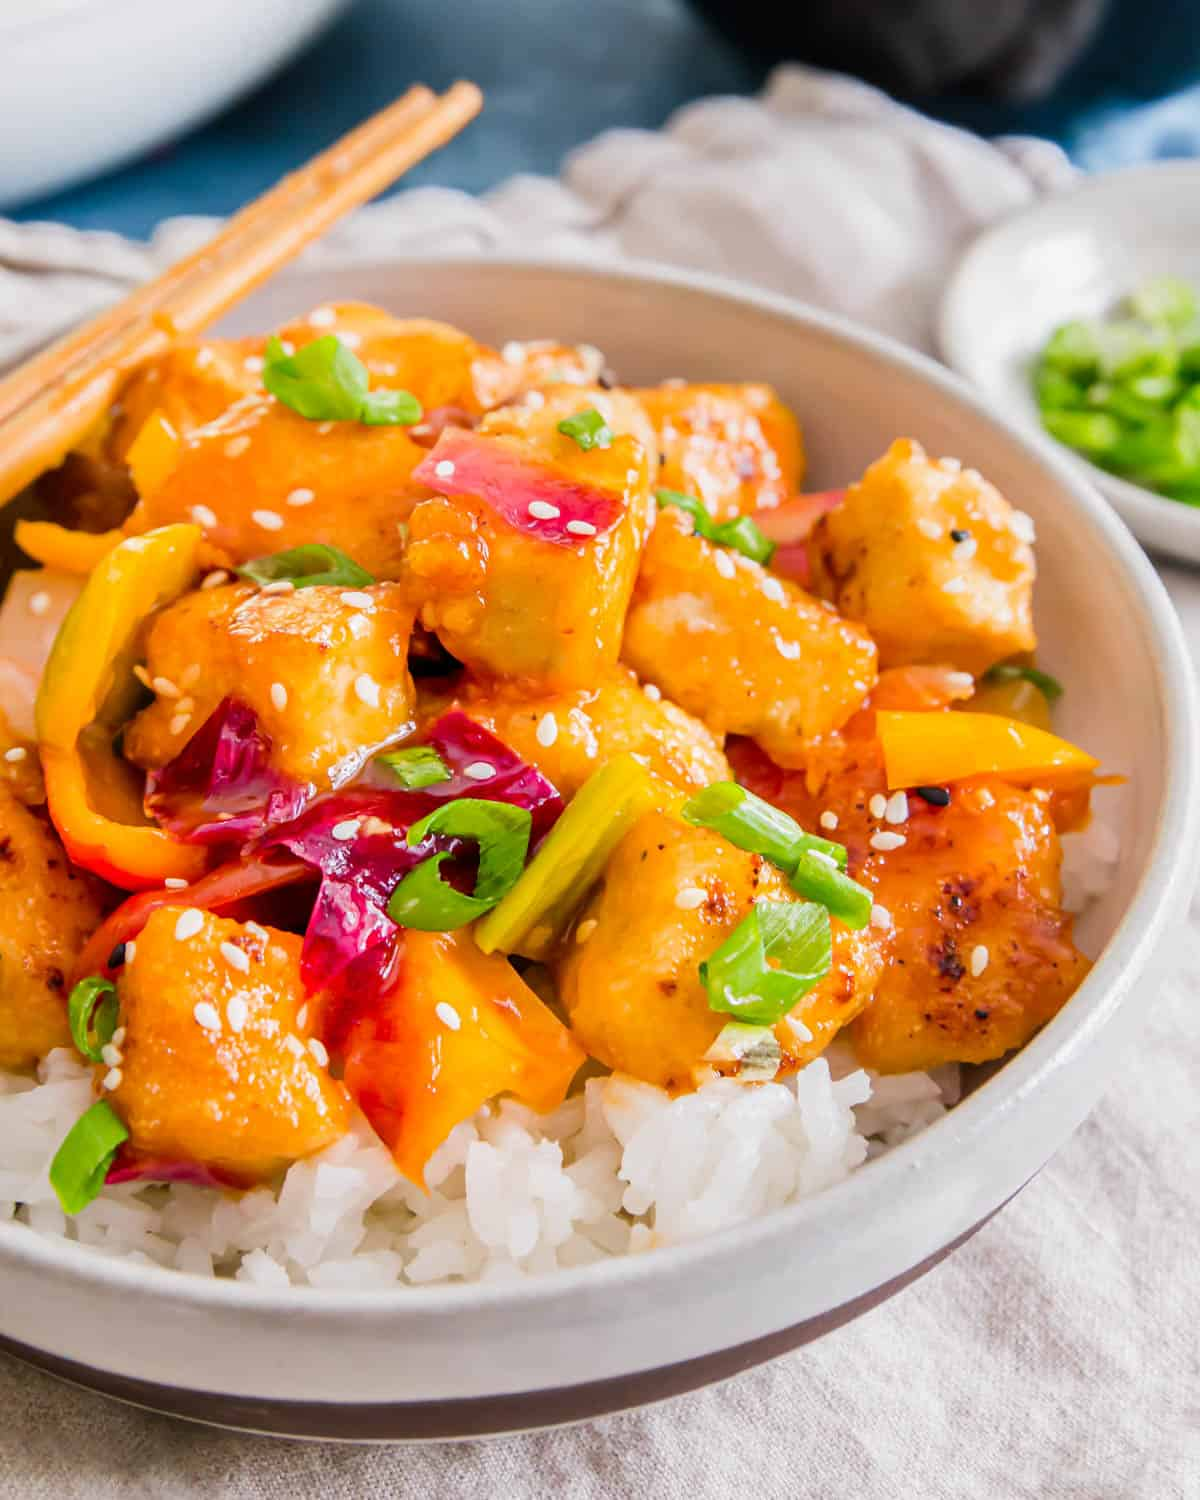 Sweet and sour tofu is a plant-based spin on the classic Chinese sweet and sour takeout dishes.